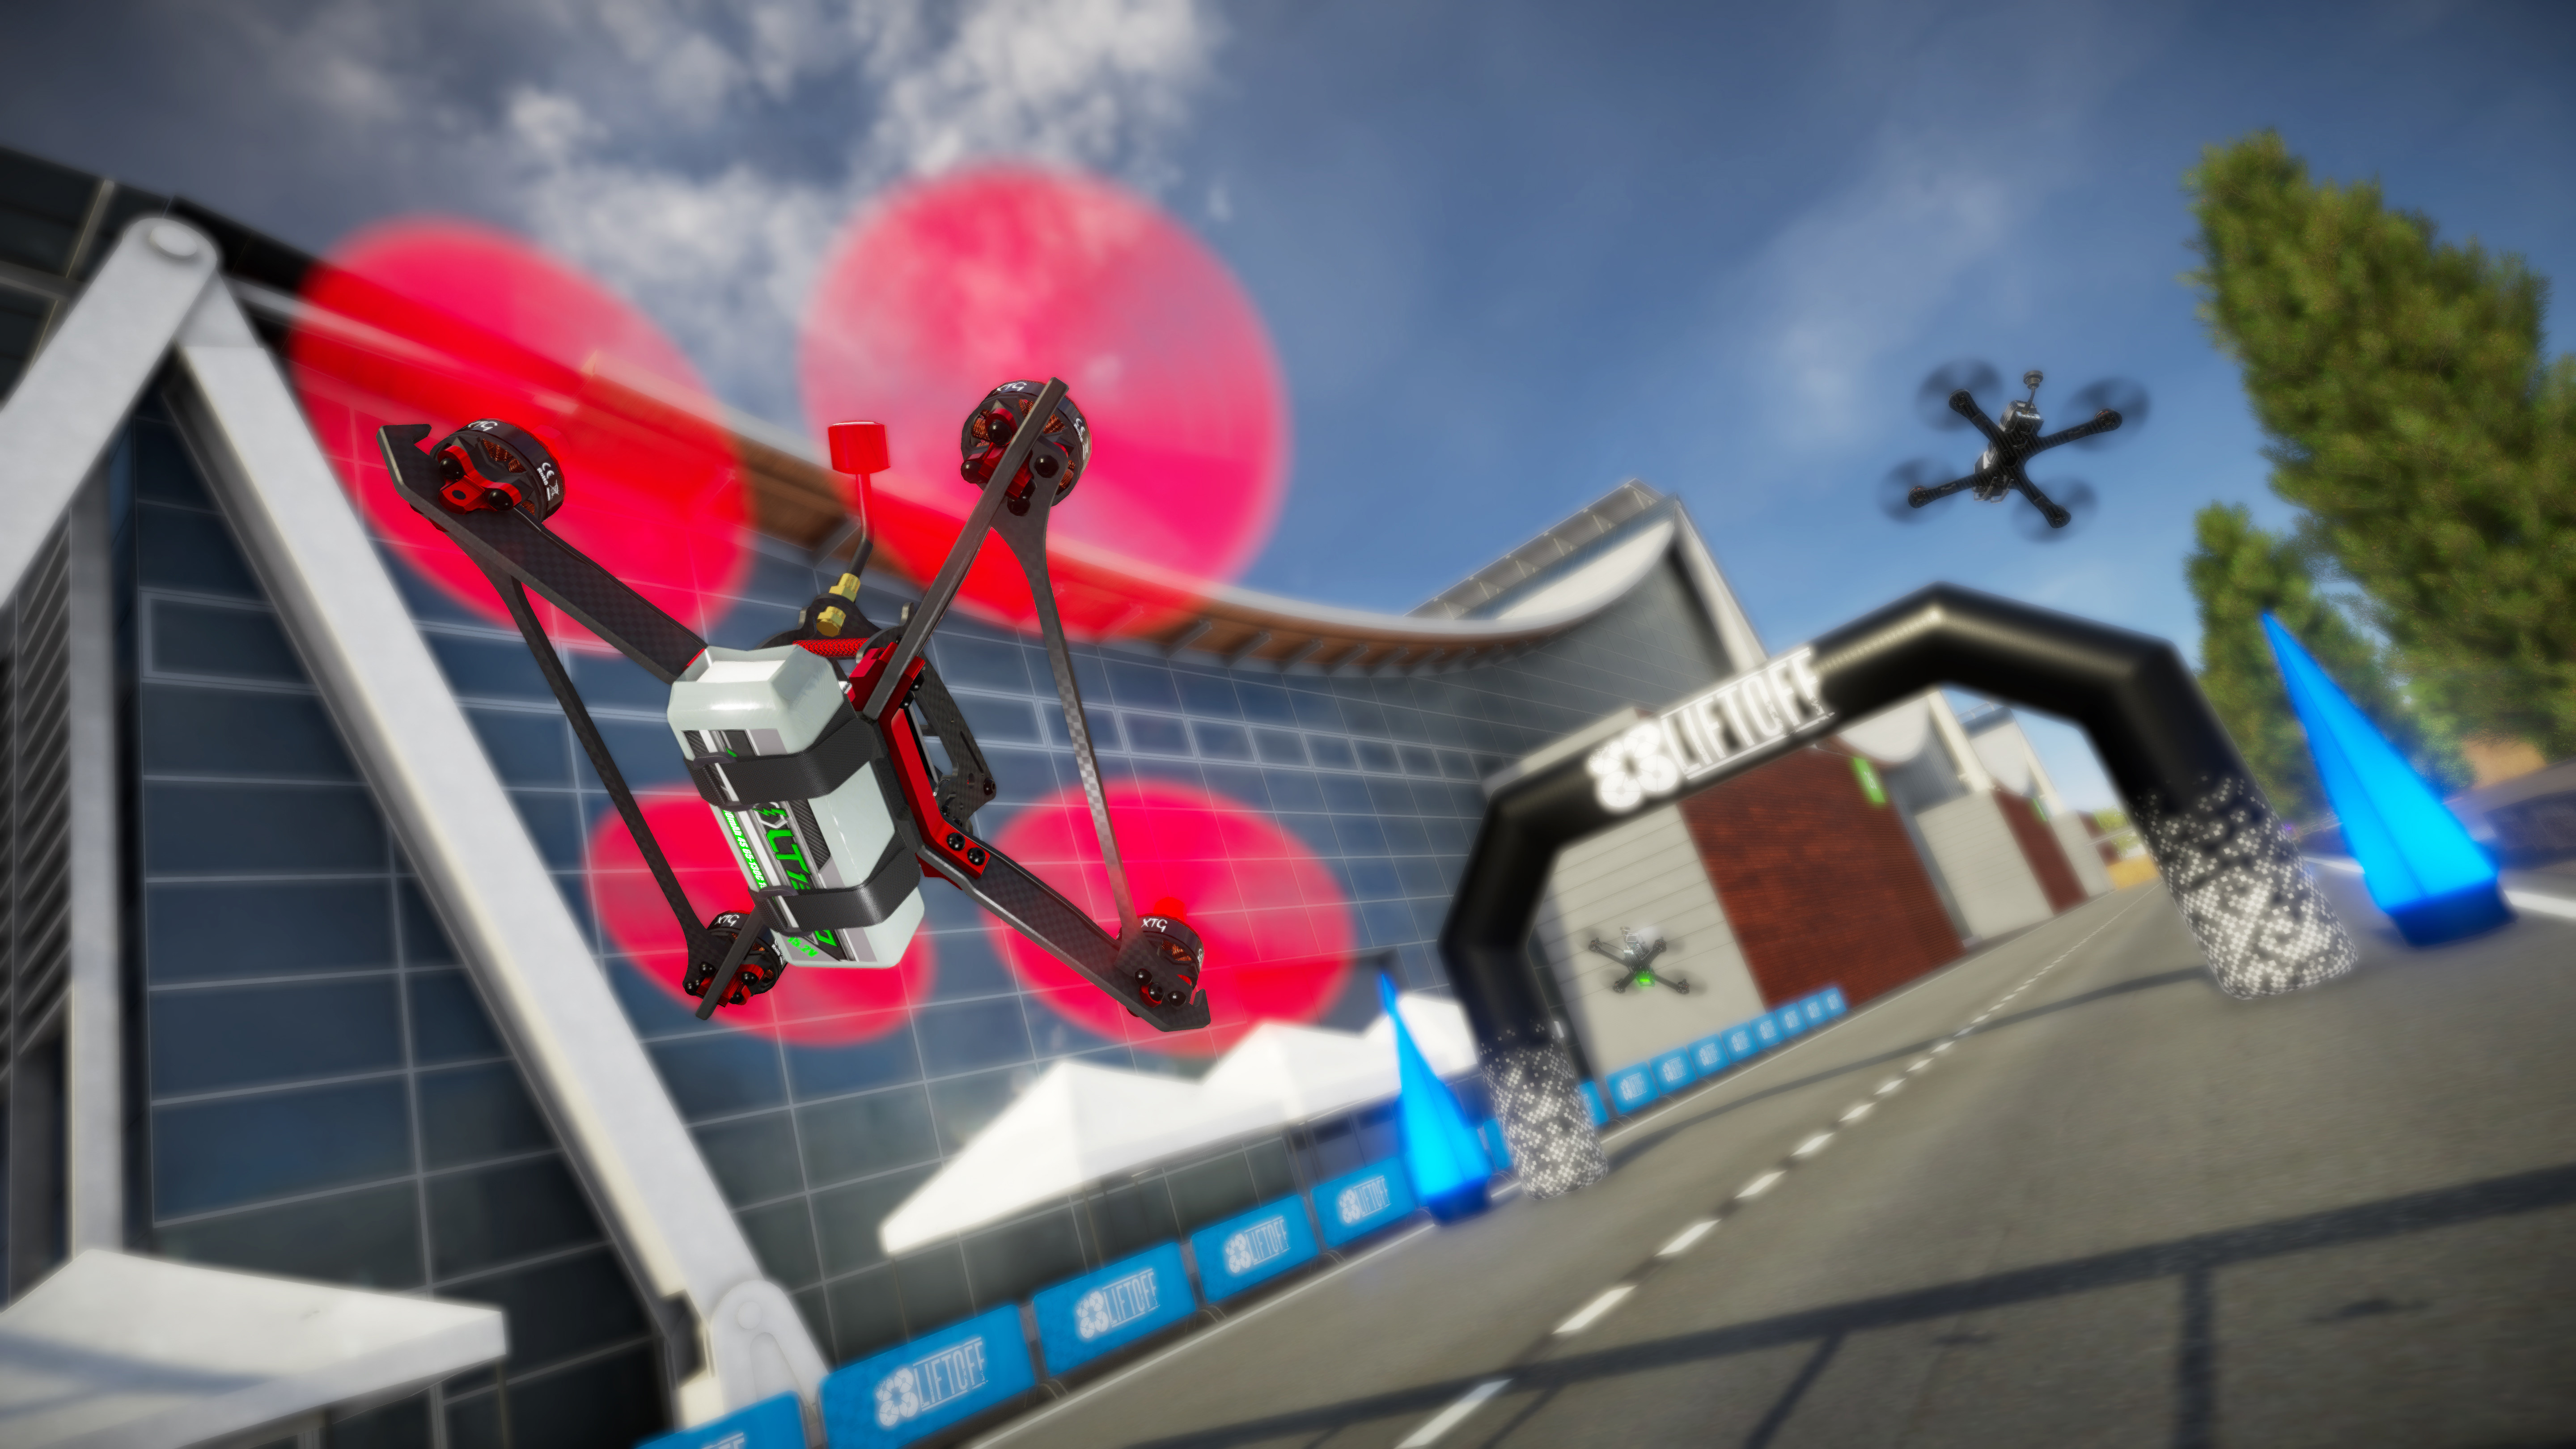 Liftoff: With the new Unity game engine and Vulkan, FPV Drone Racing is getting a major upgrade.